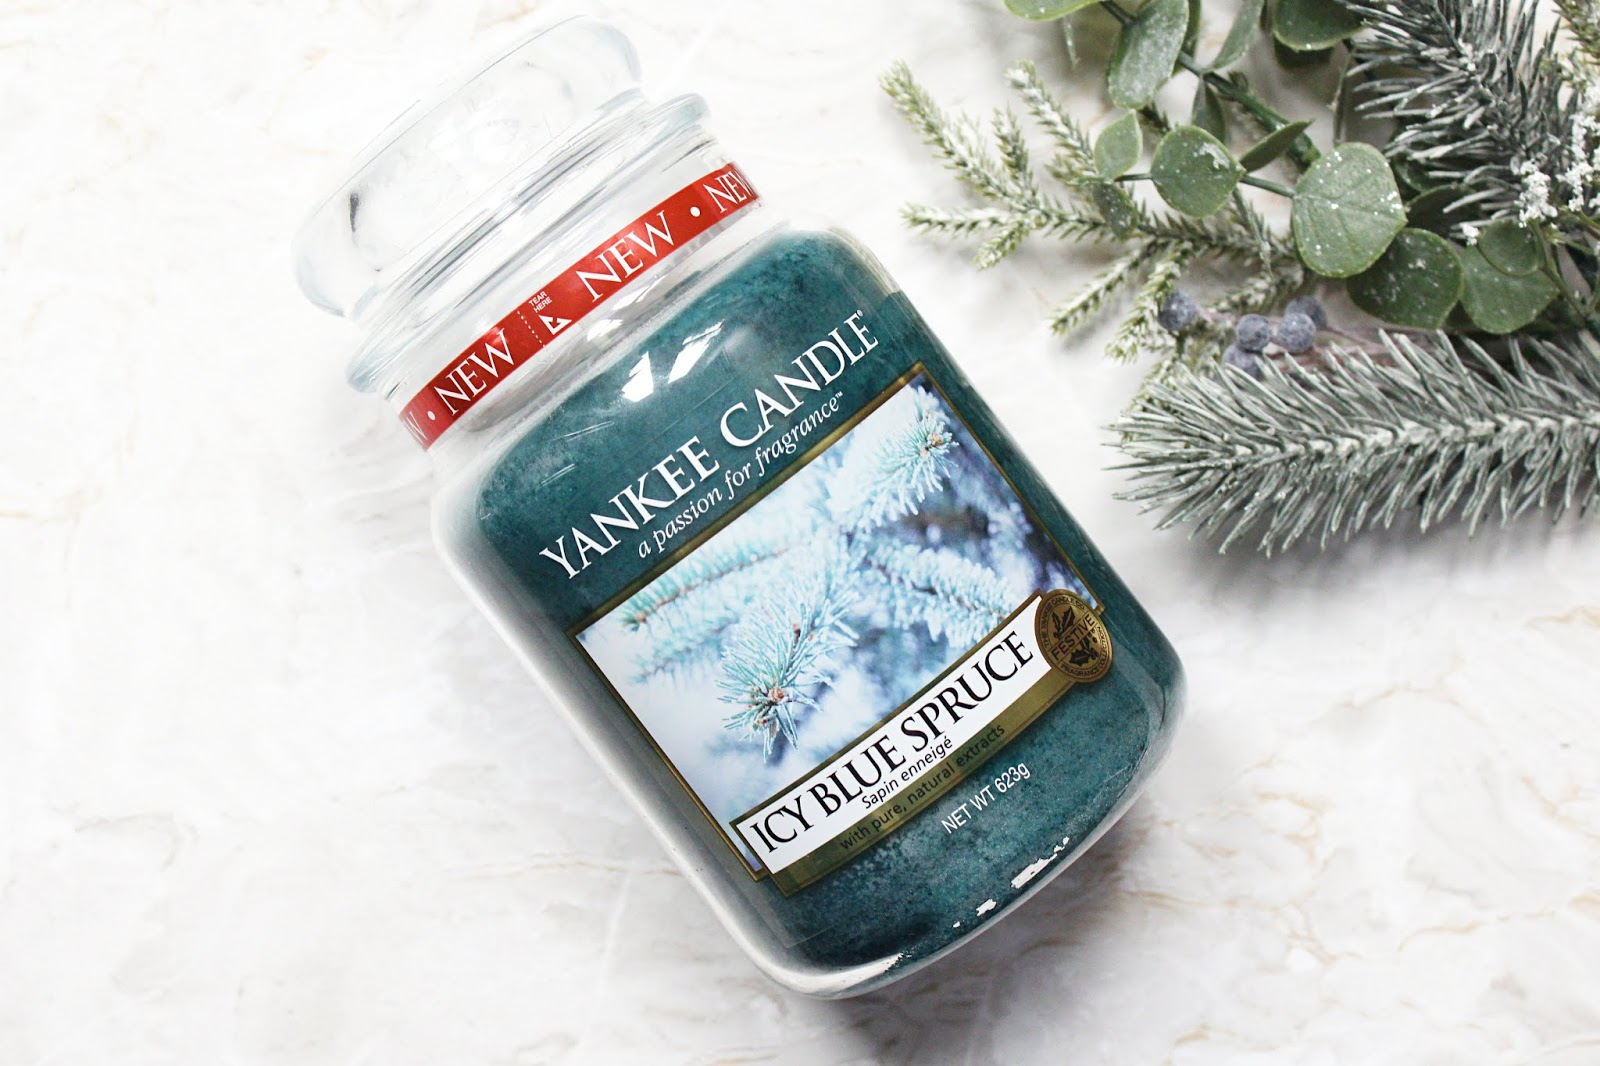 Yankee Candle Icy Blue Spruce Candle Review